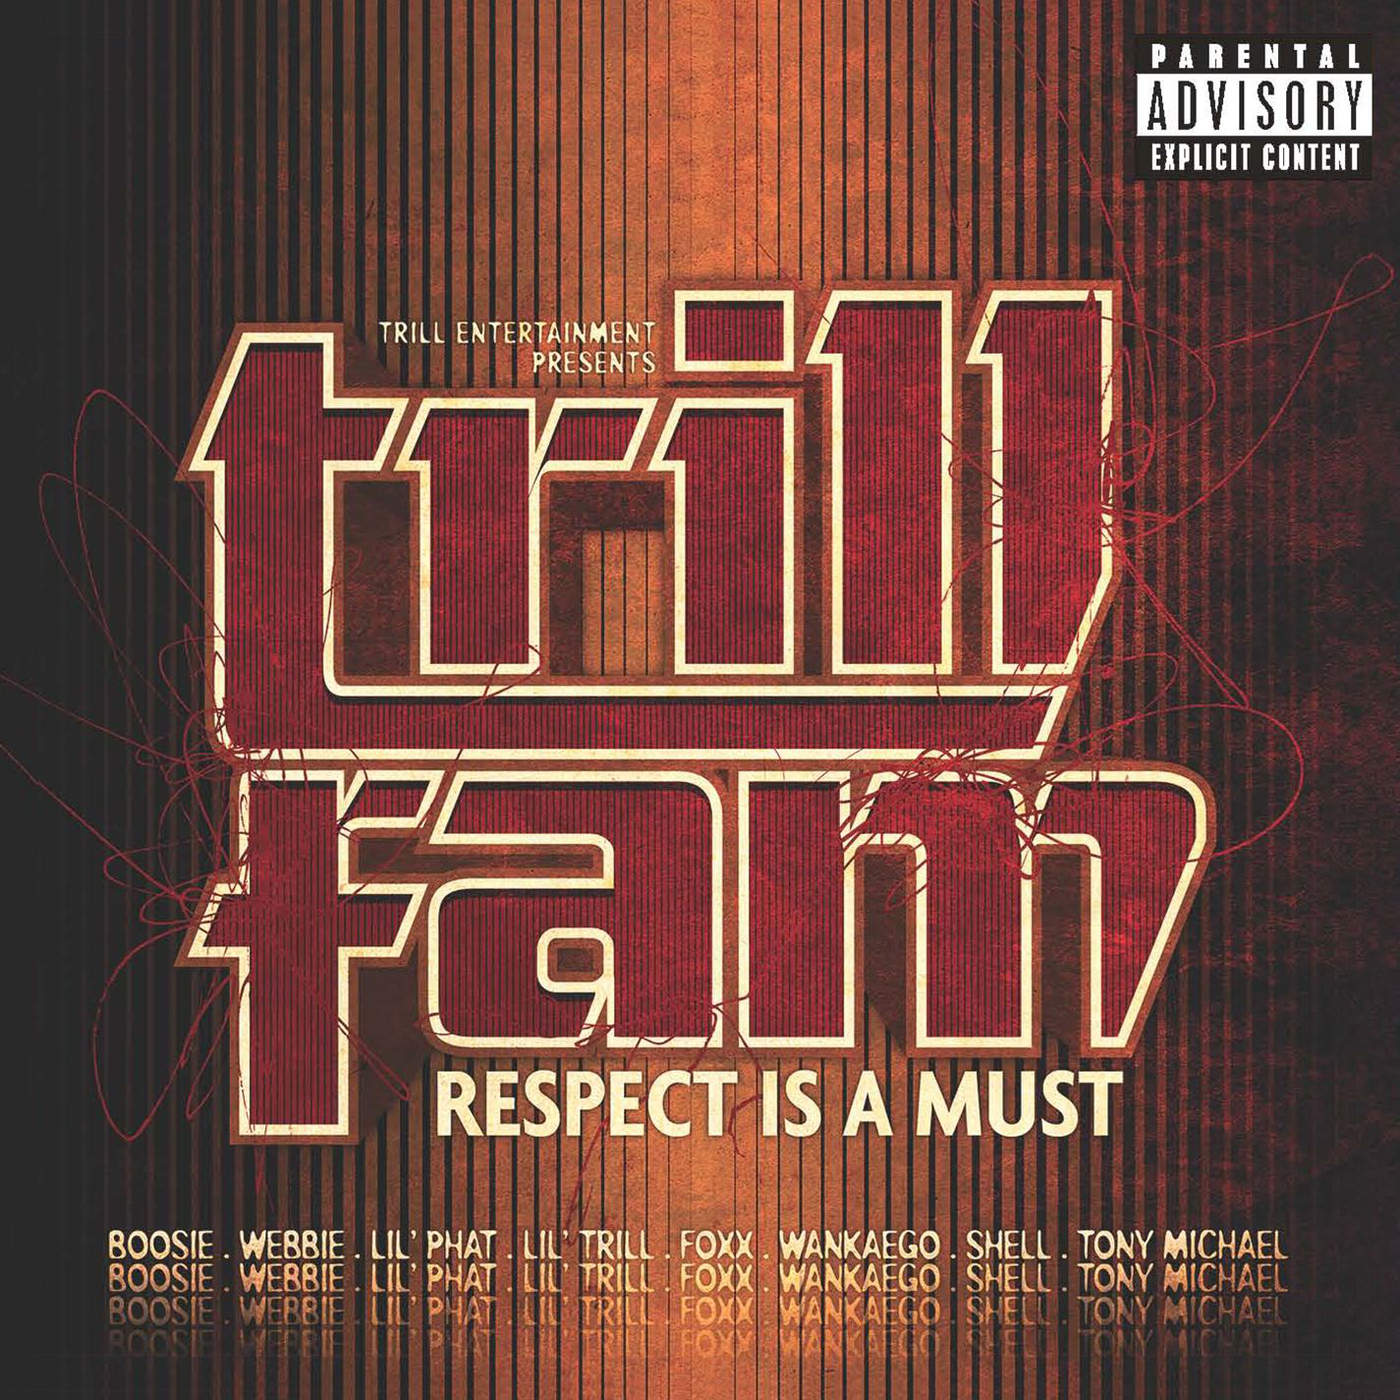 Various Artists - Trill Entertainment Presents: Trill Fam - Respect Is a Must Cover